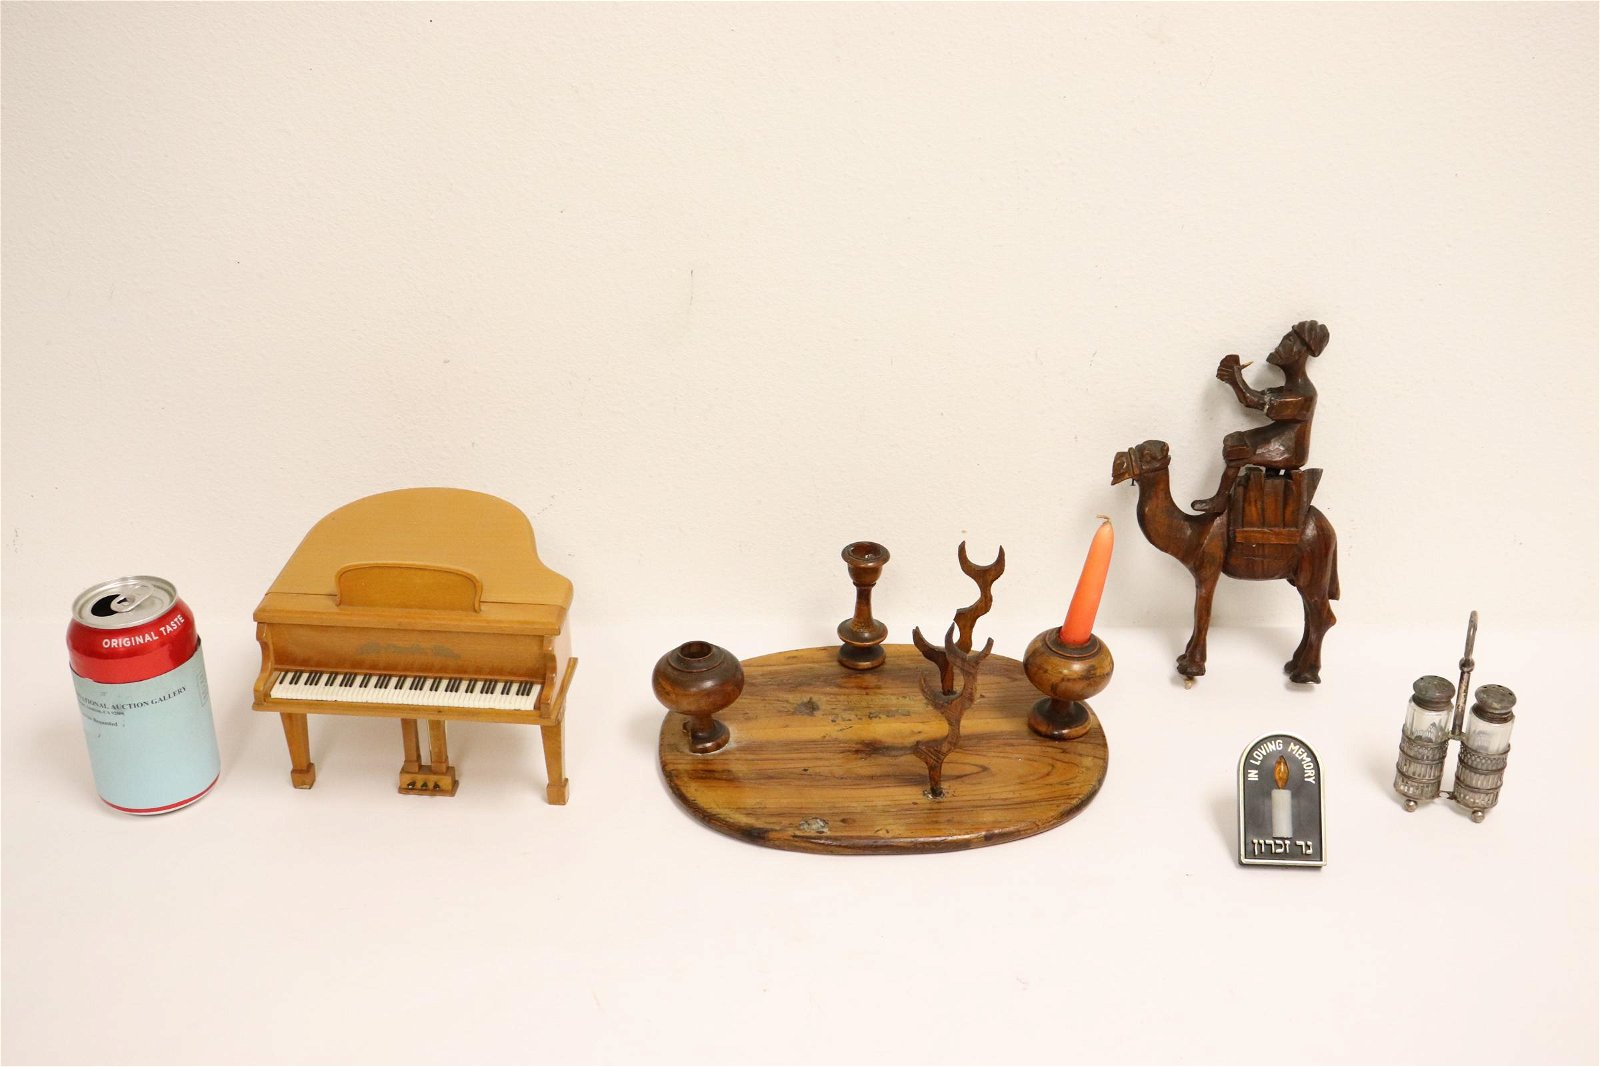 Lot of misc.; including a radio in piano motif